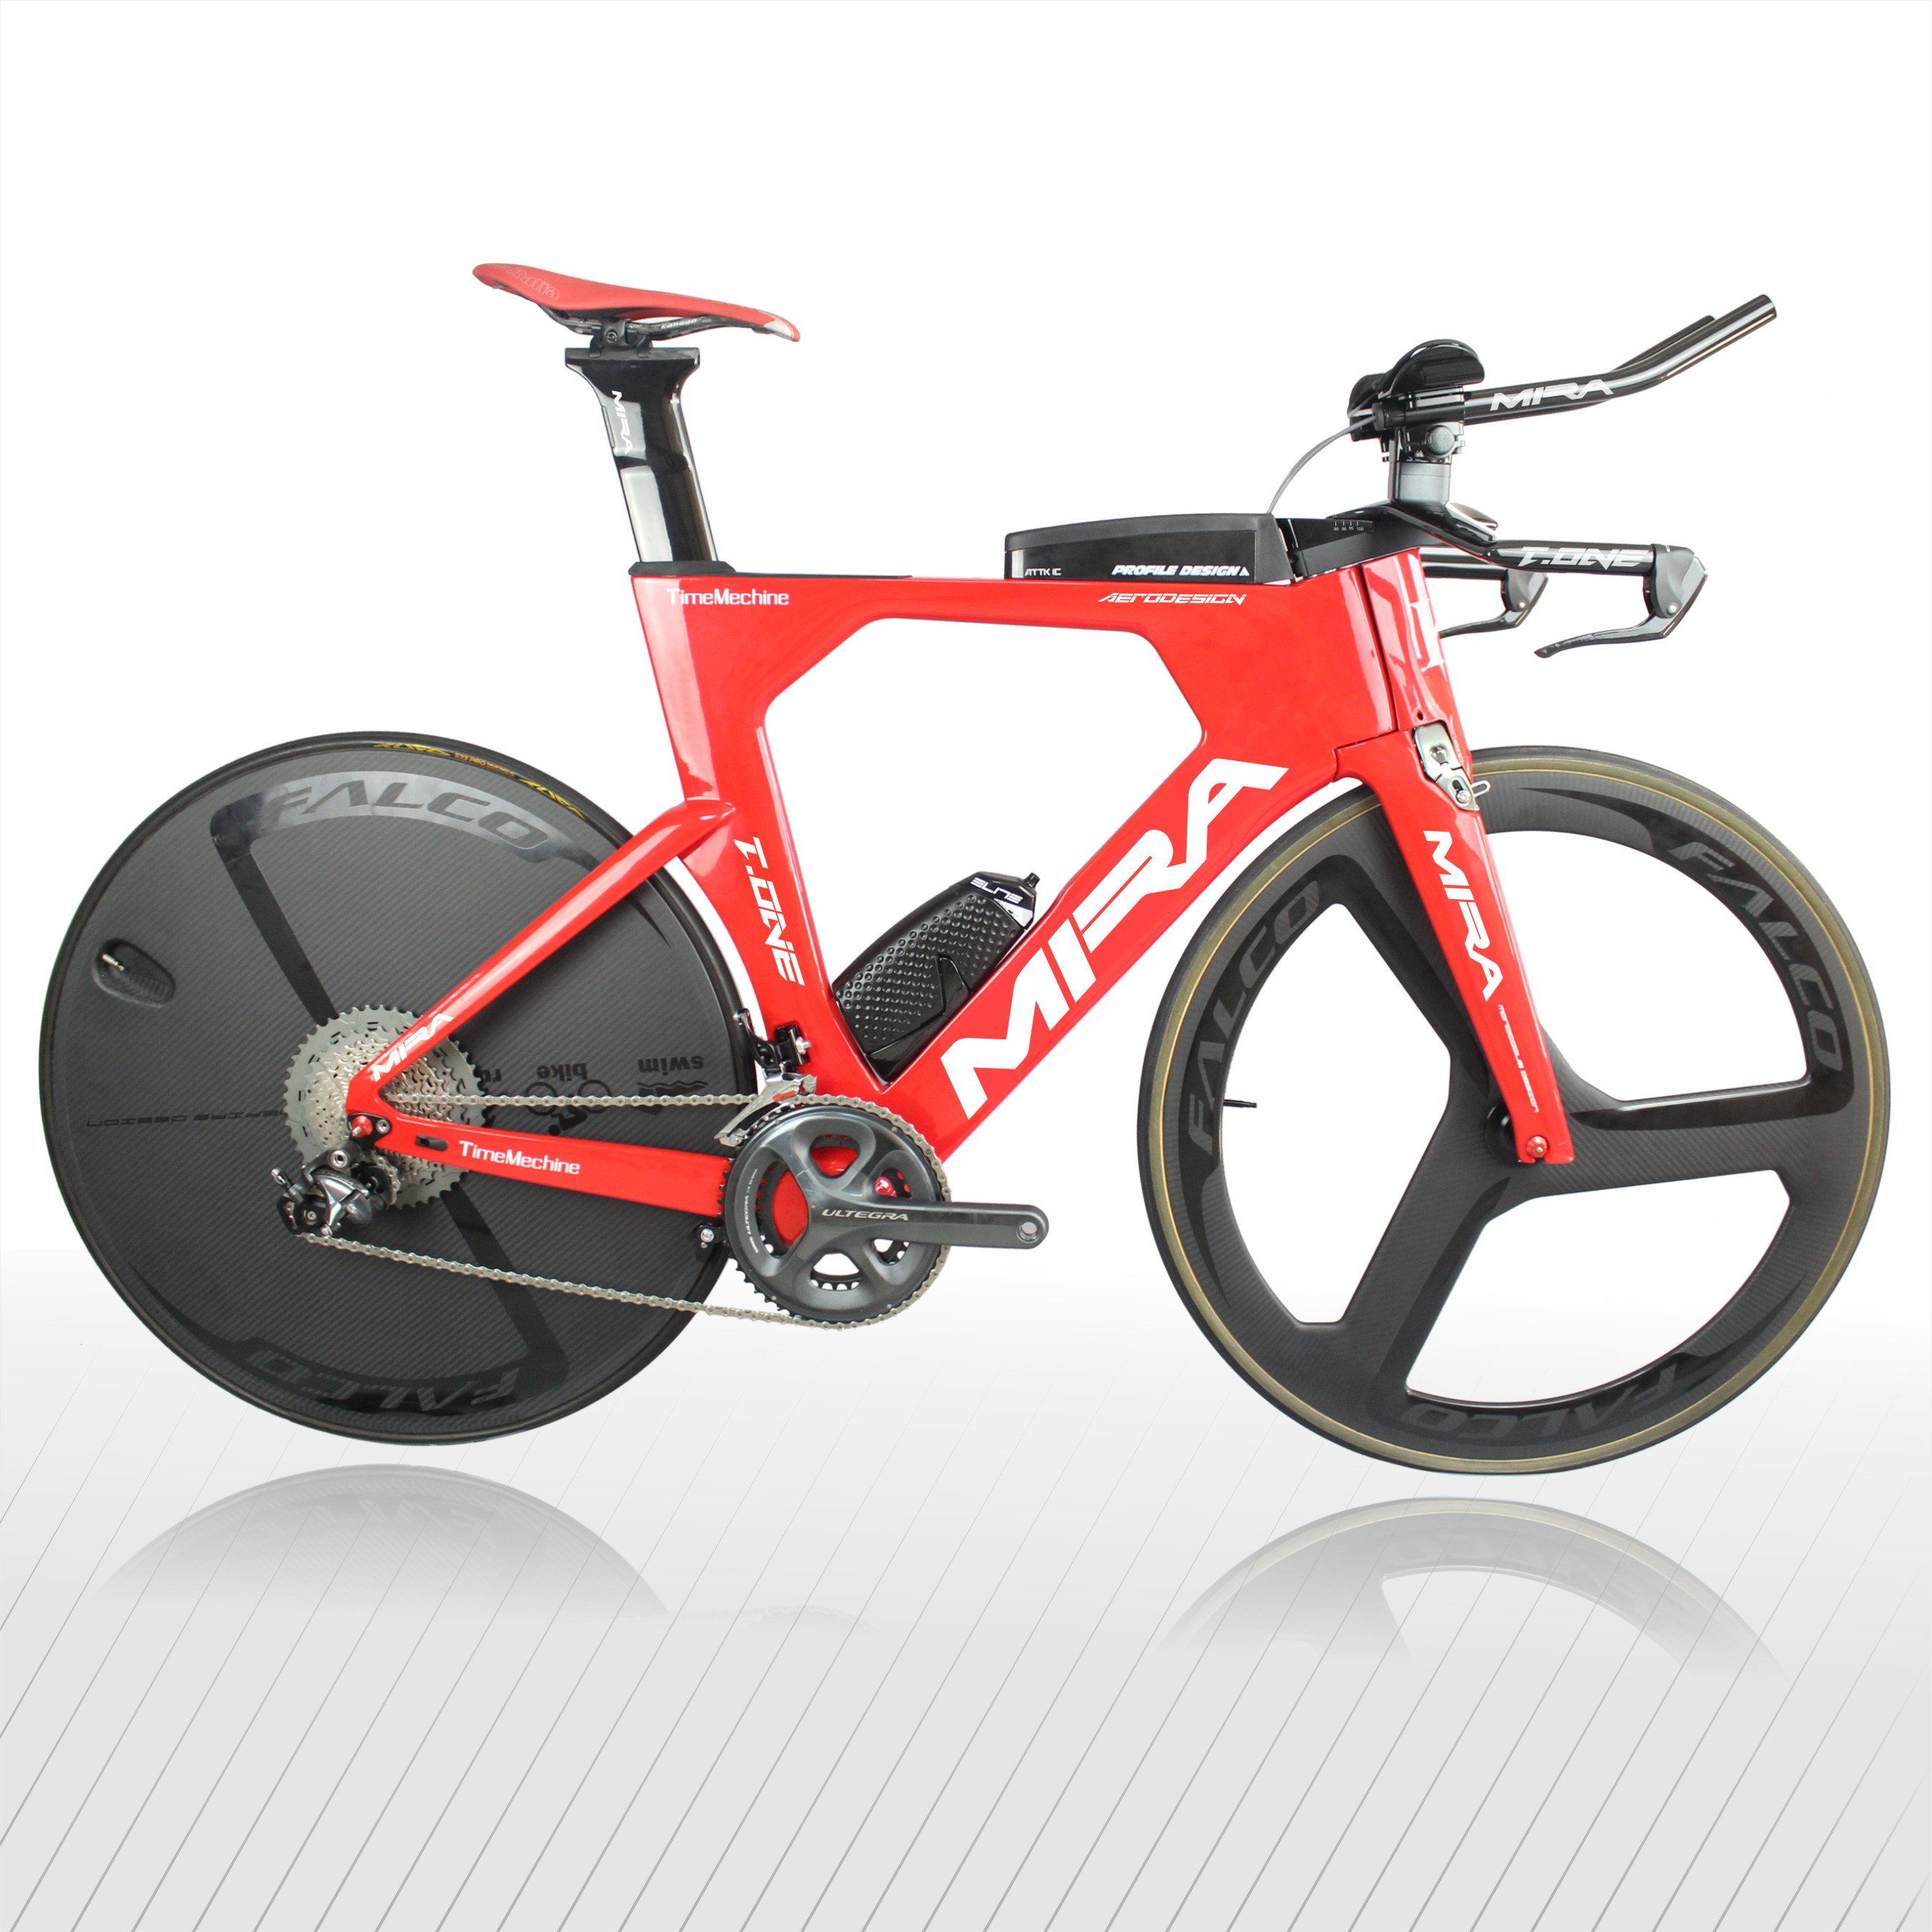 MIRACLE 2020 TT Bike T-ONE Light Weight Carbon Fiber Triathlon Bicycle Frame